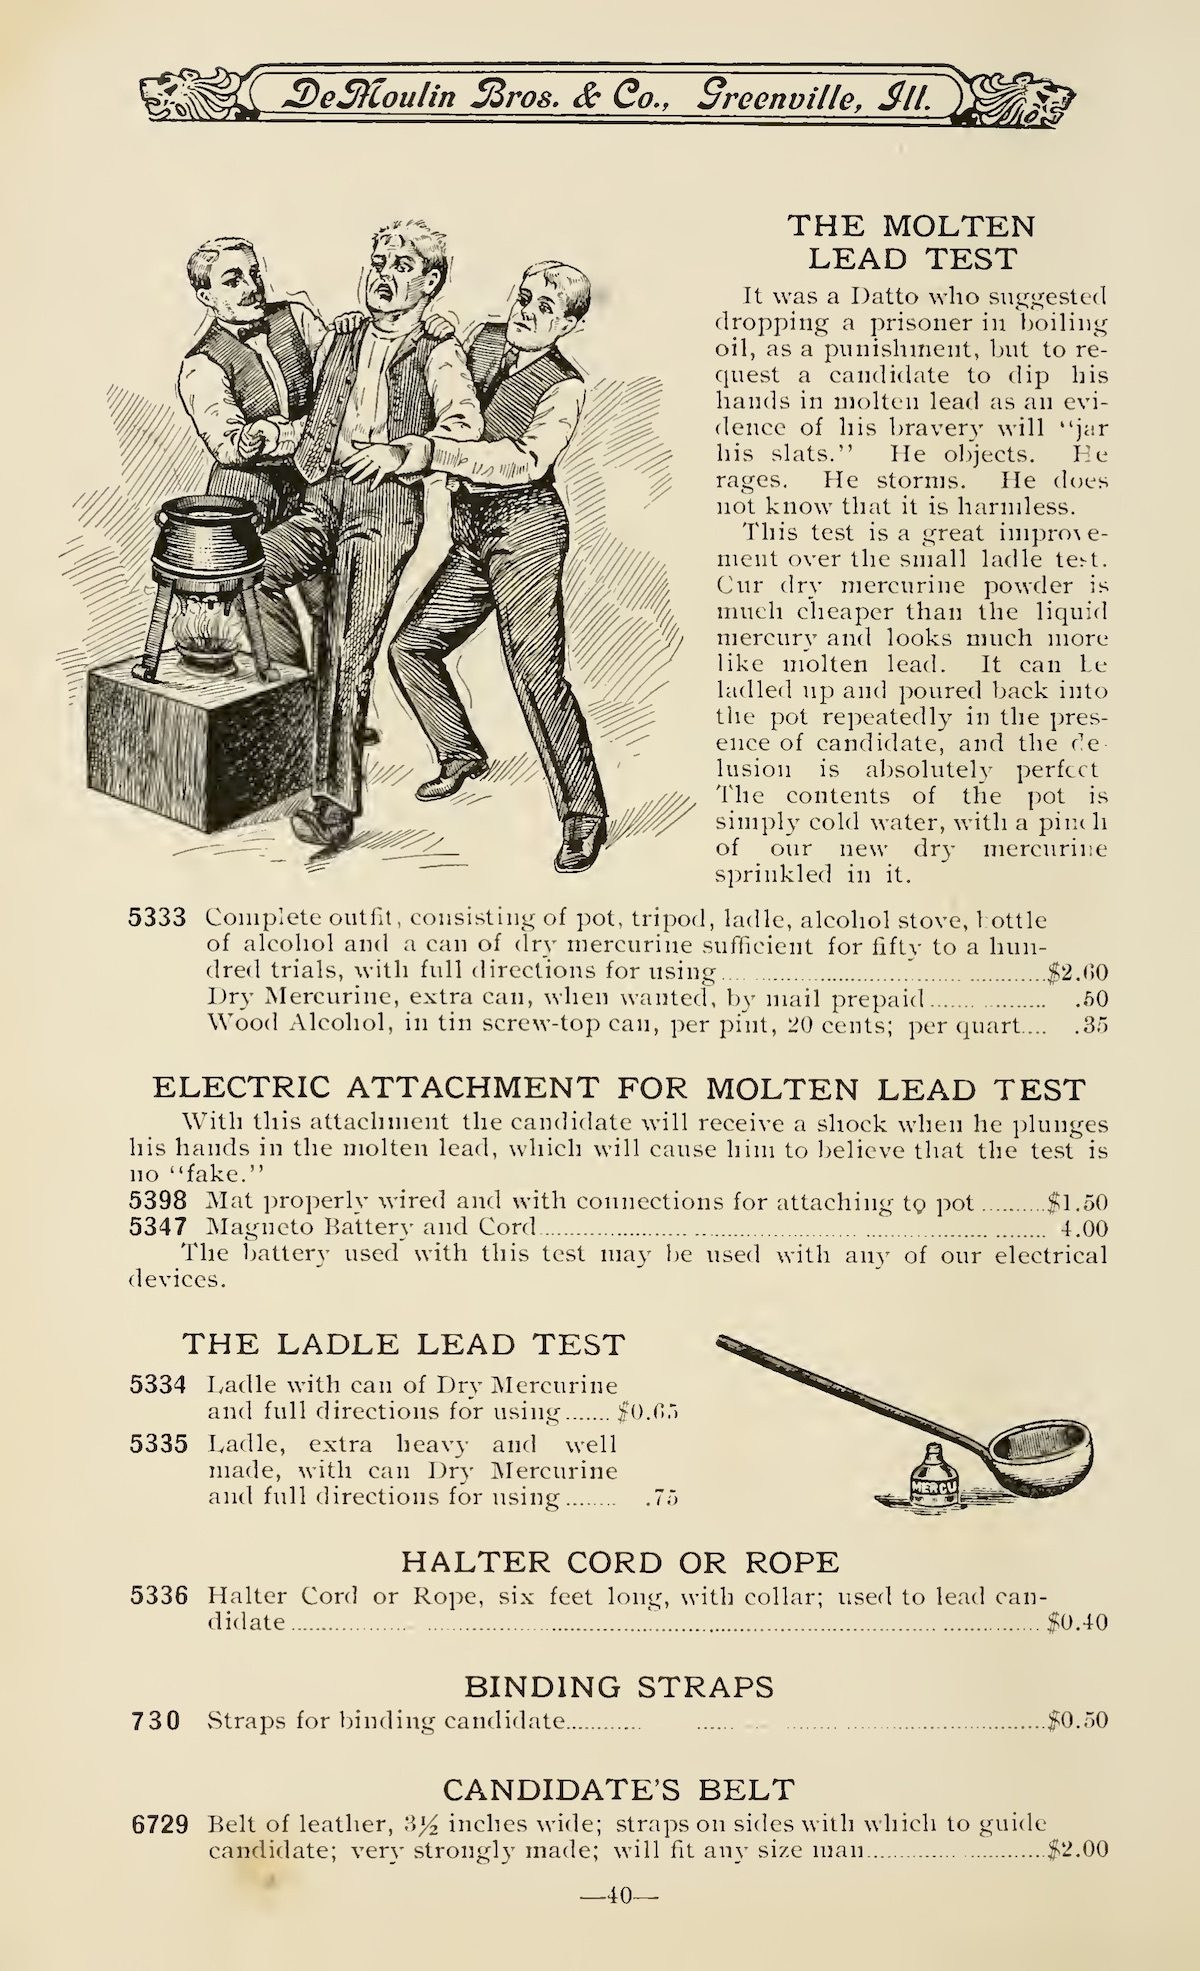 Demoulin brothers Hazing goods catalogue 1908